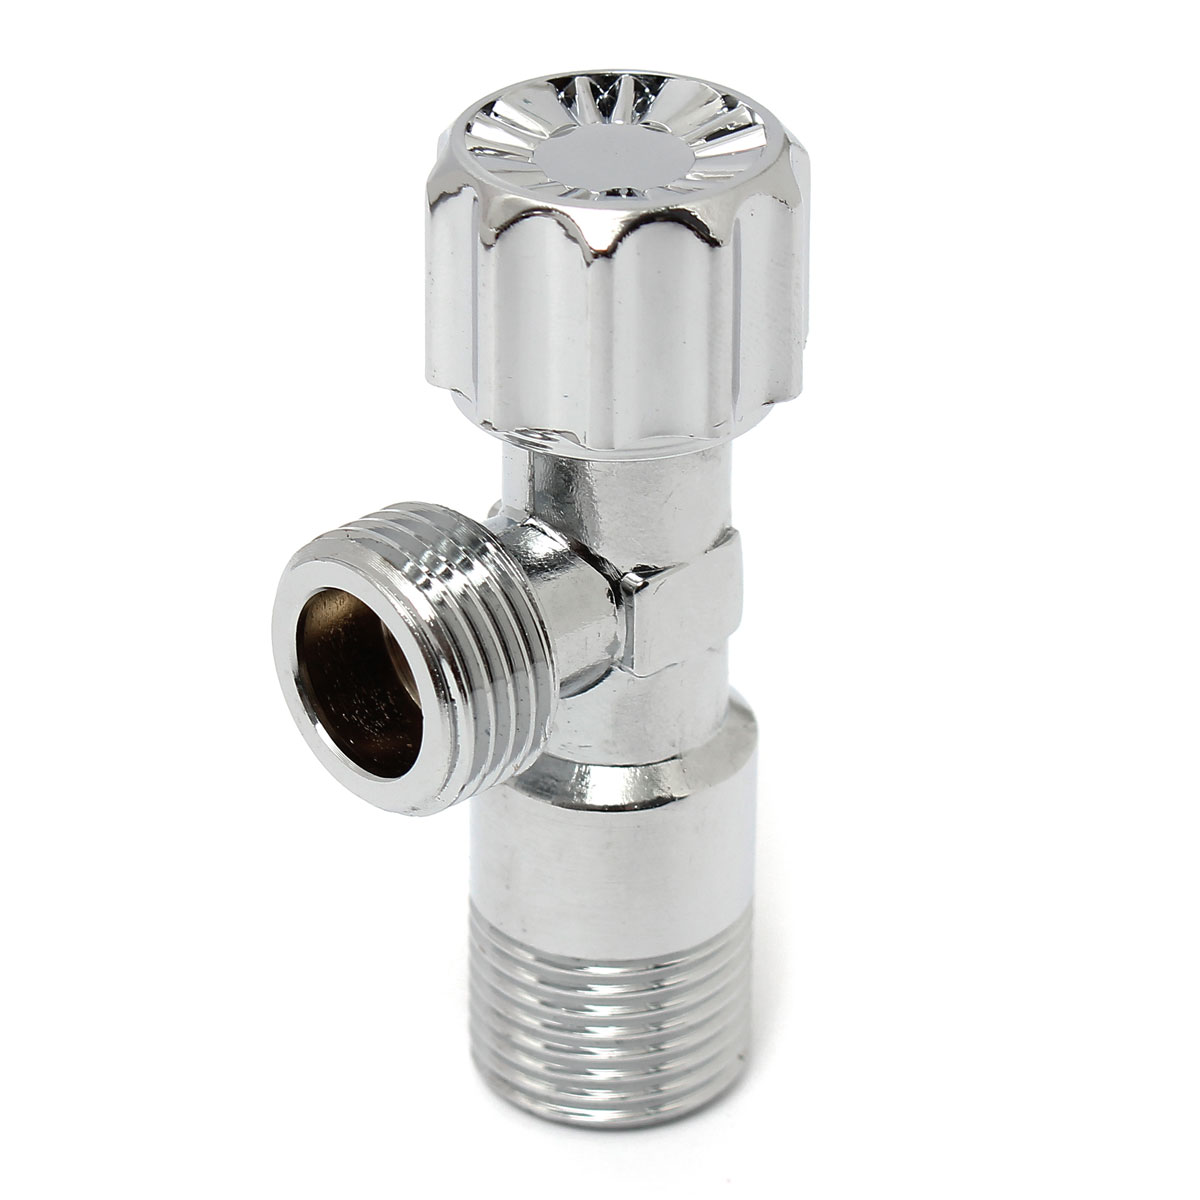 U Type Chrome Electric Water Heater Mixing Valve Single: G1/2 Copper Triangle Valve Water Mixing Angle Valve Water